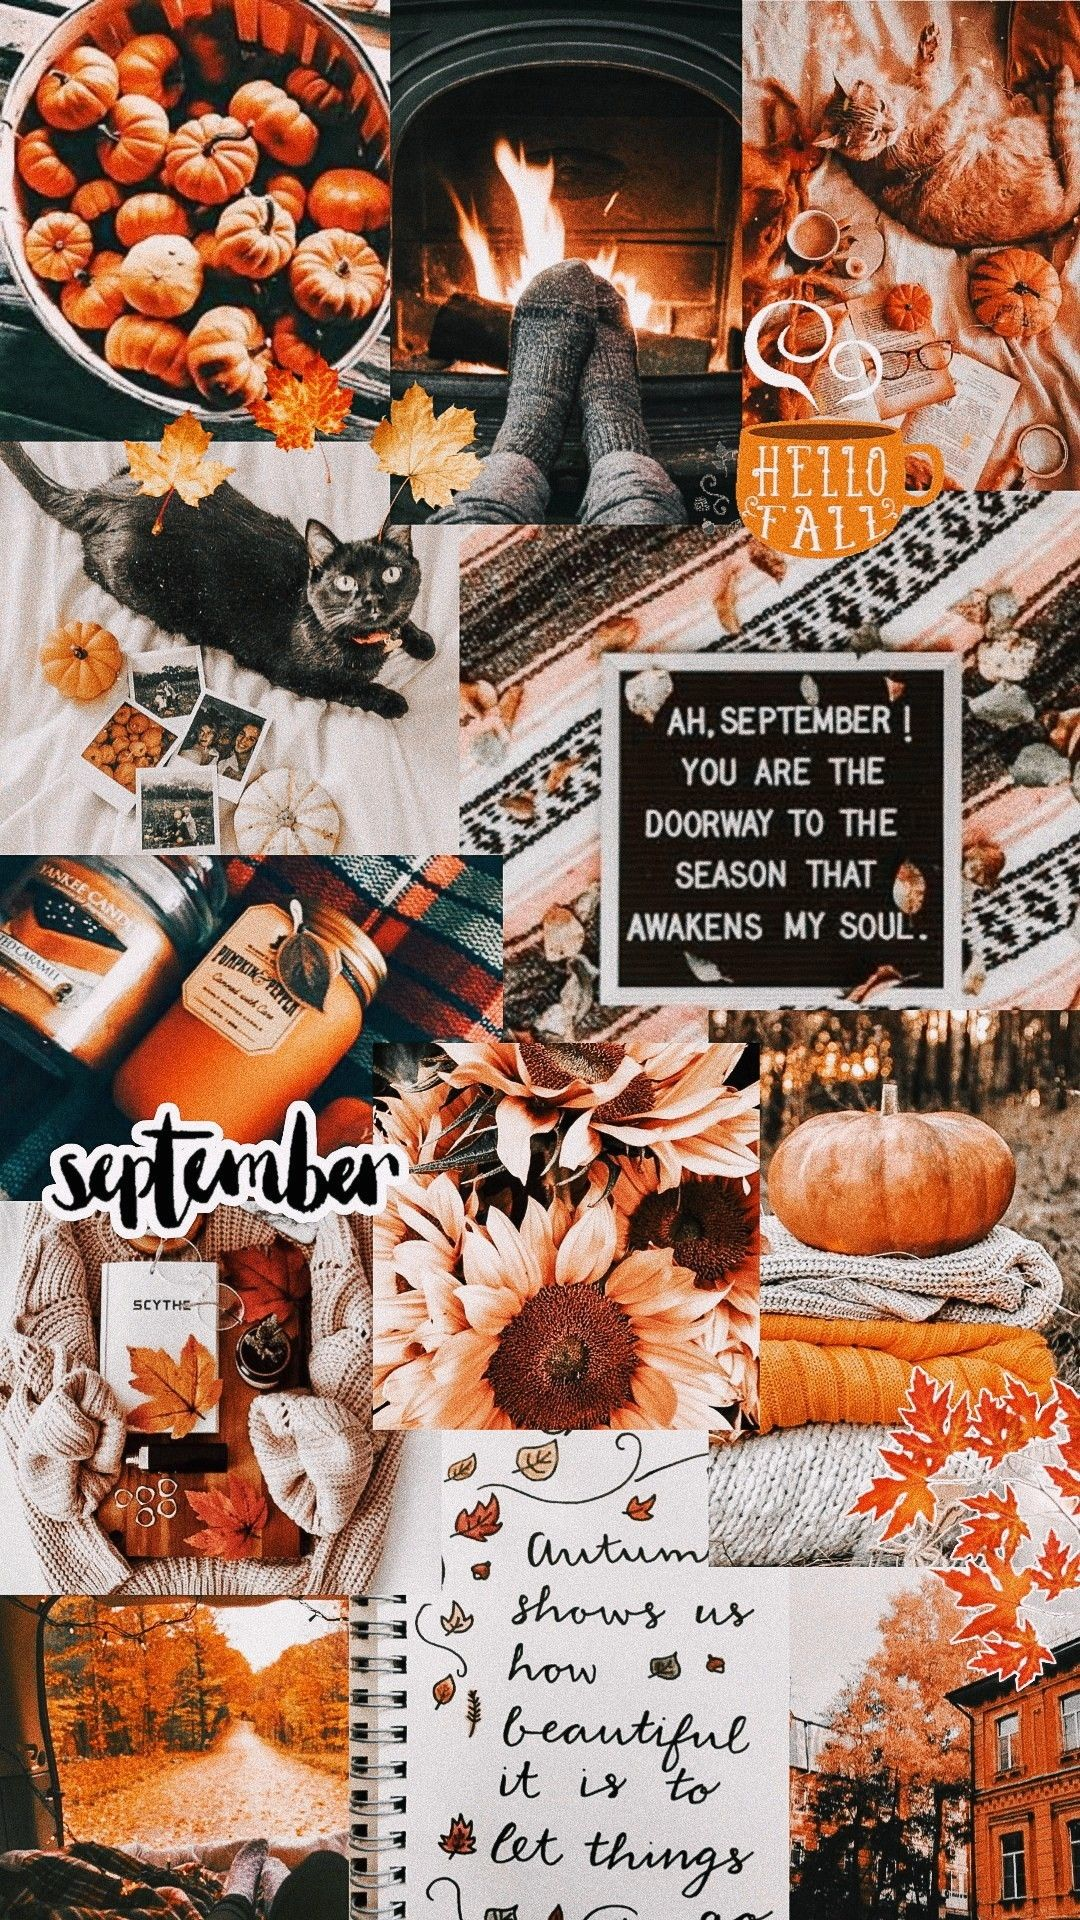 Fall Collage Wallpaper In 2020 Iphone Wallpaper Fall Halloween Wallpaper Halloween Wallpaper Iphone